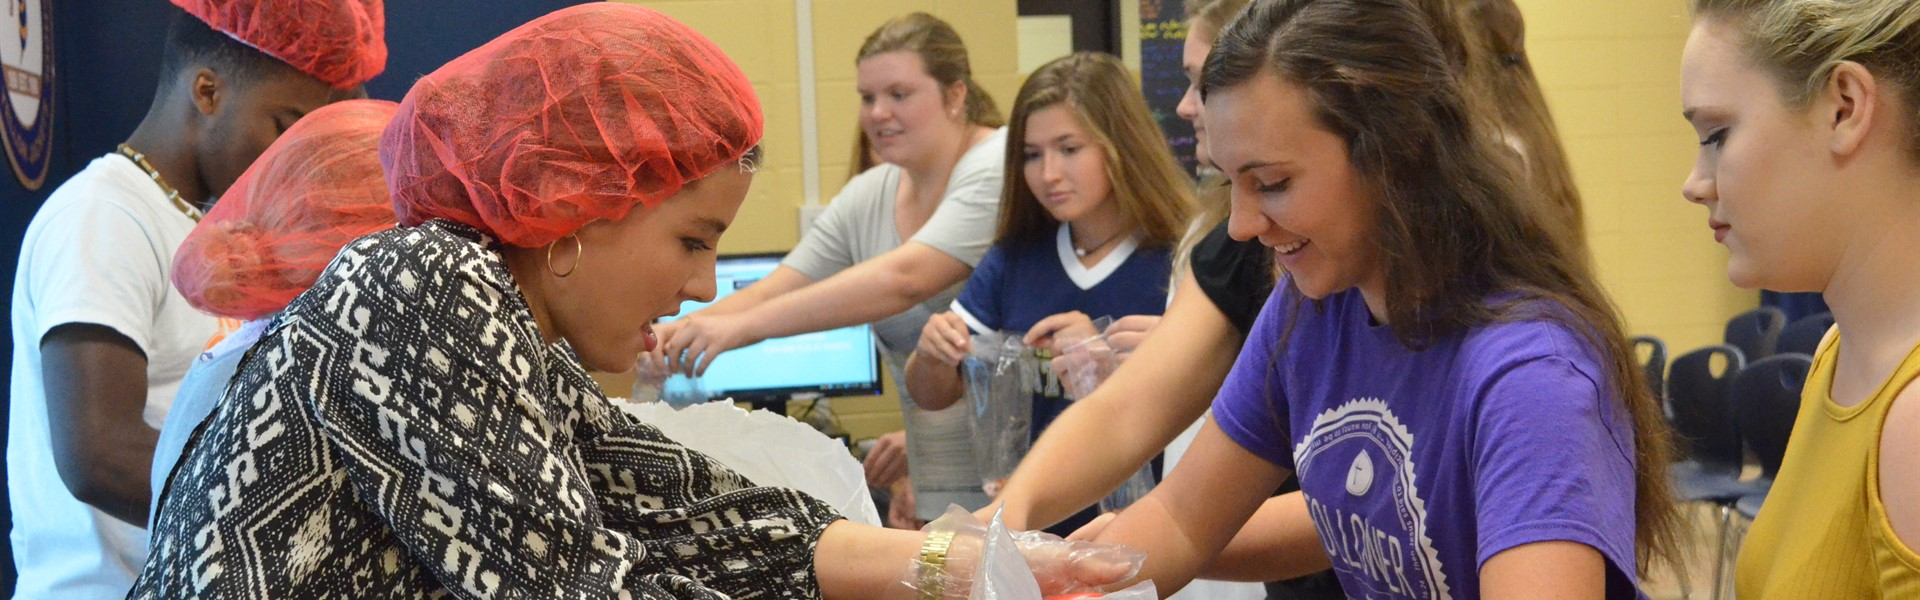 TCCHS students prepare food bags through the Chick-fil-a Leader Academy.